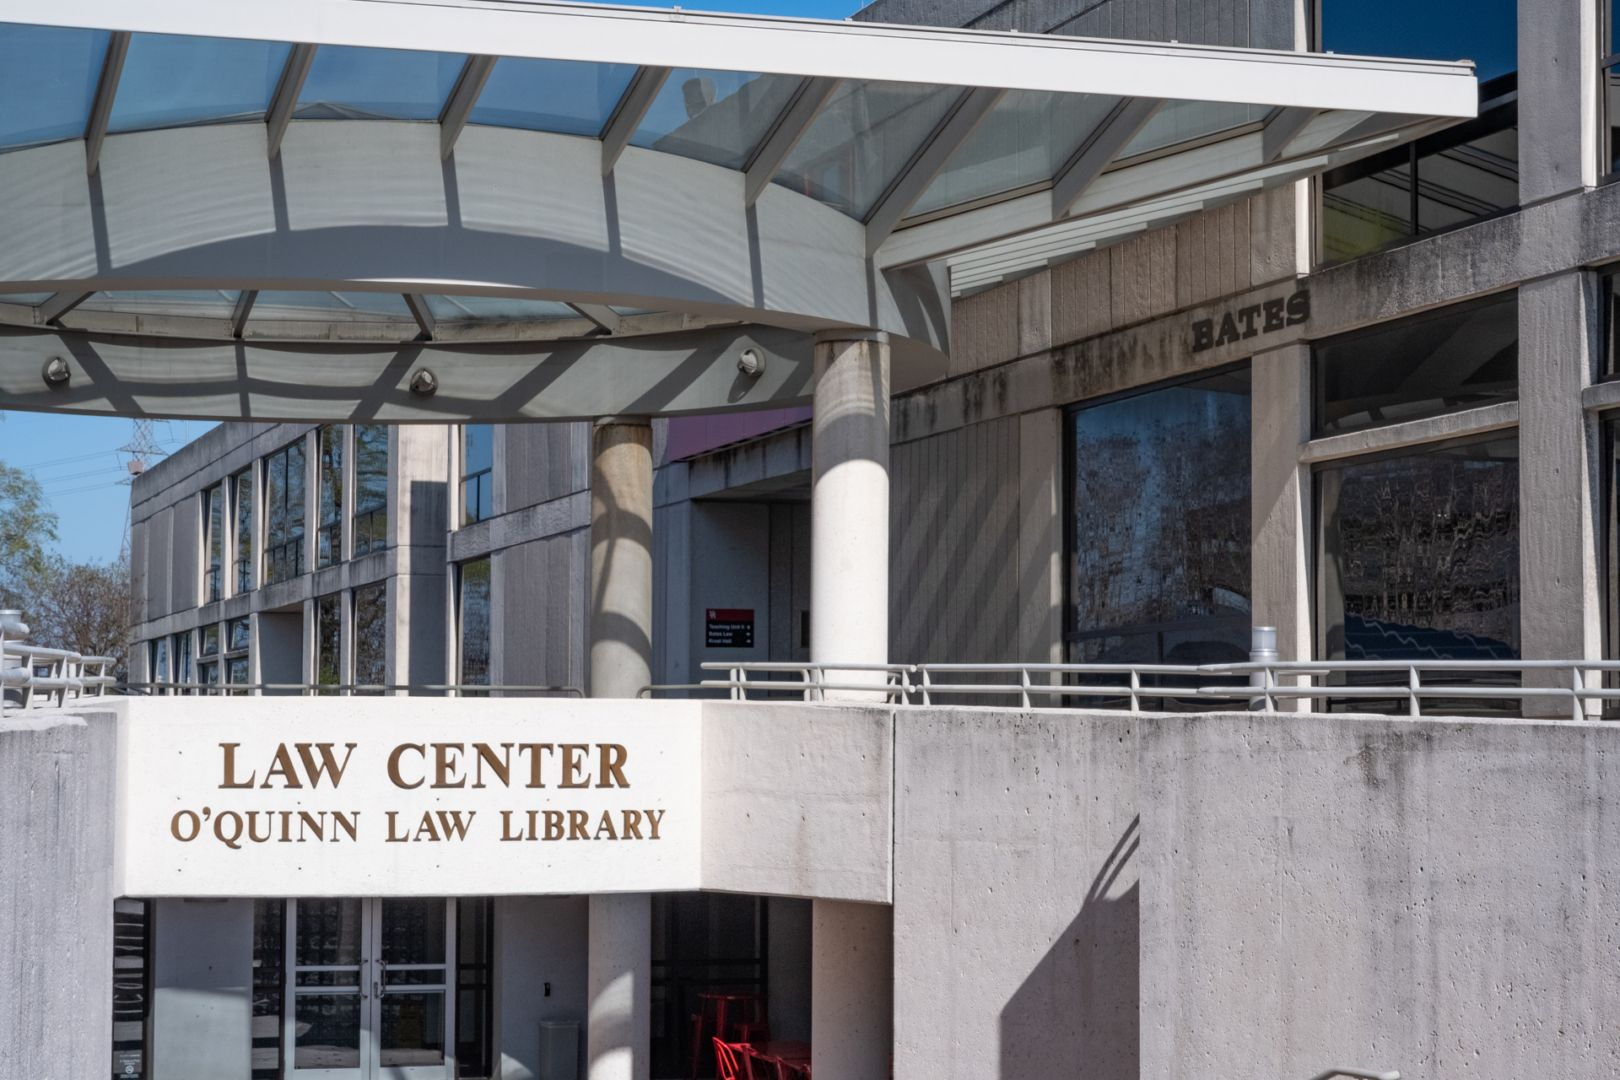 Pin on Law Center News